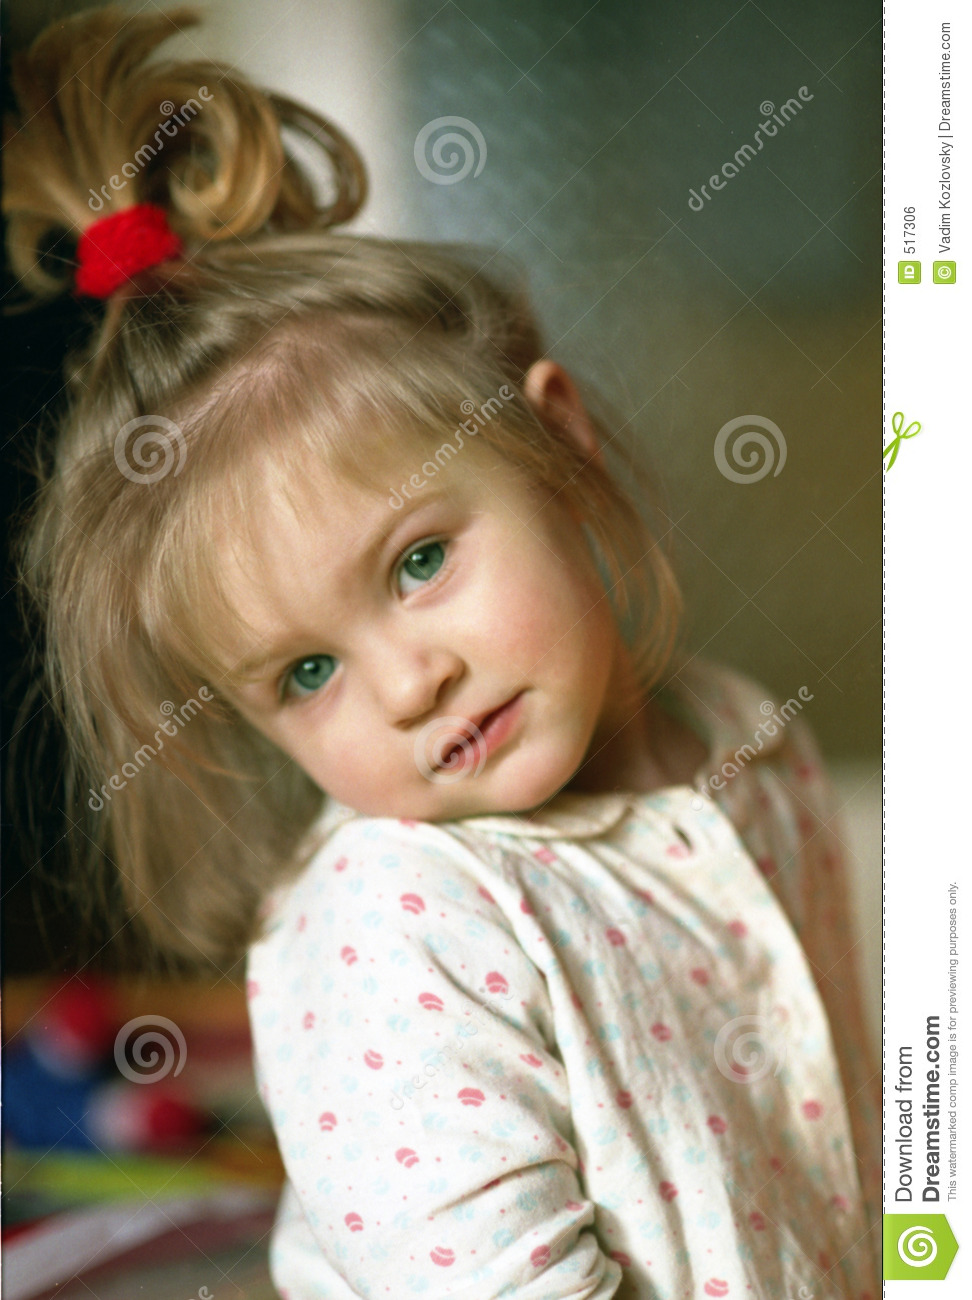 pretty girl royalty free stock image   image 517306